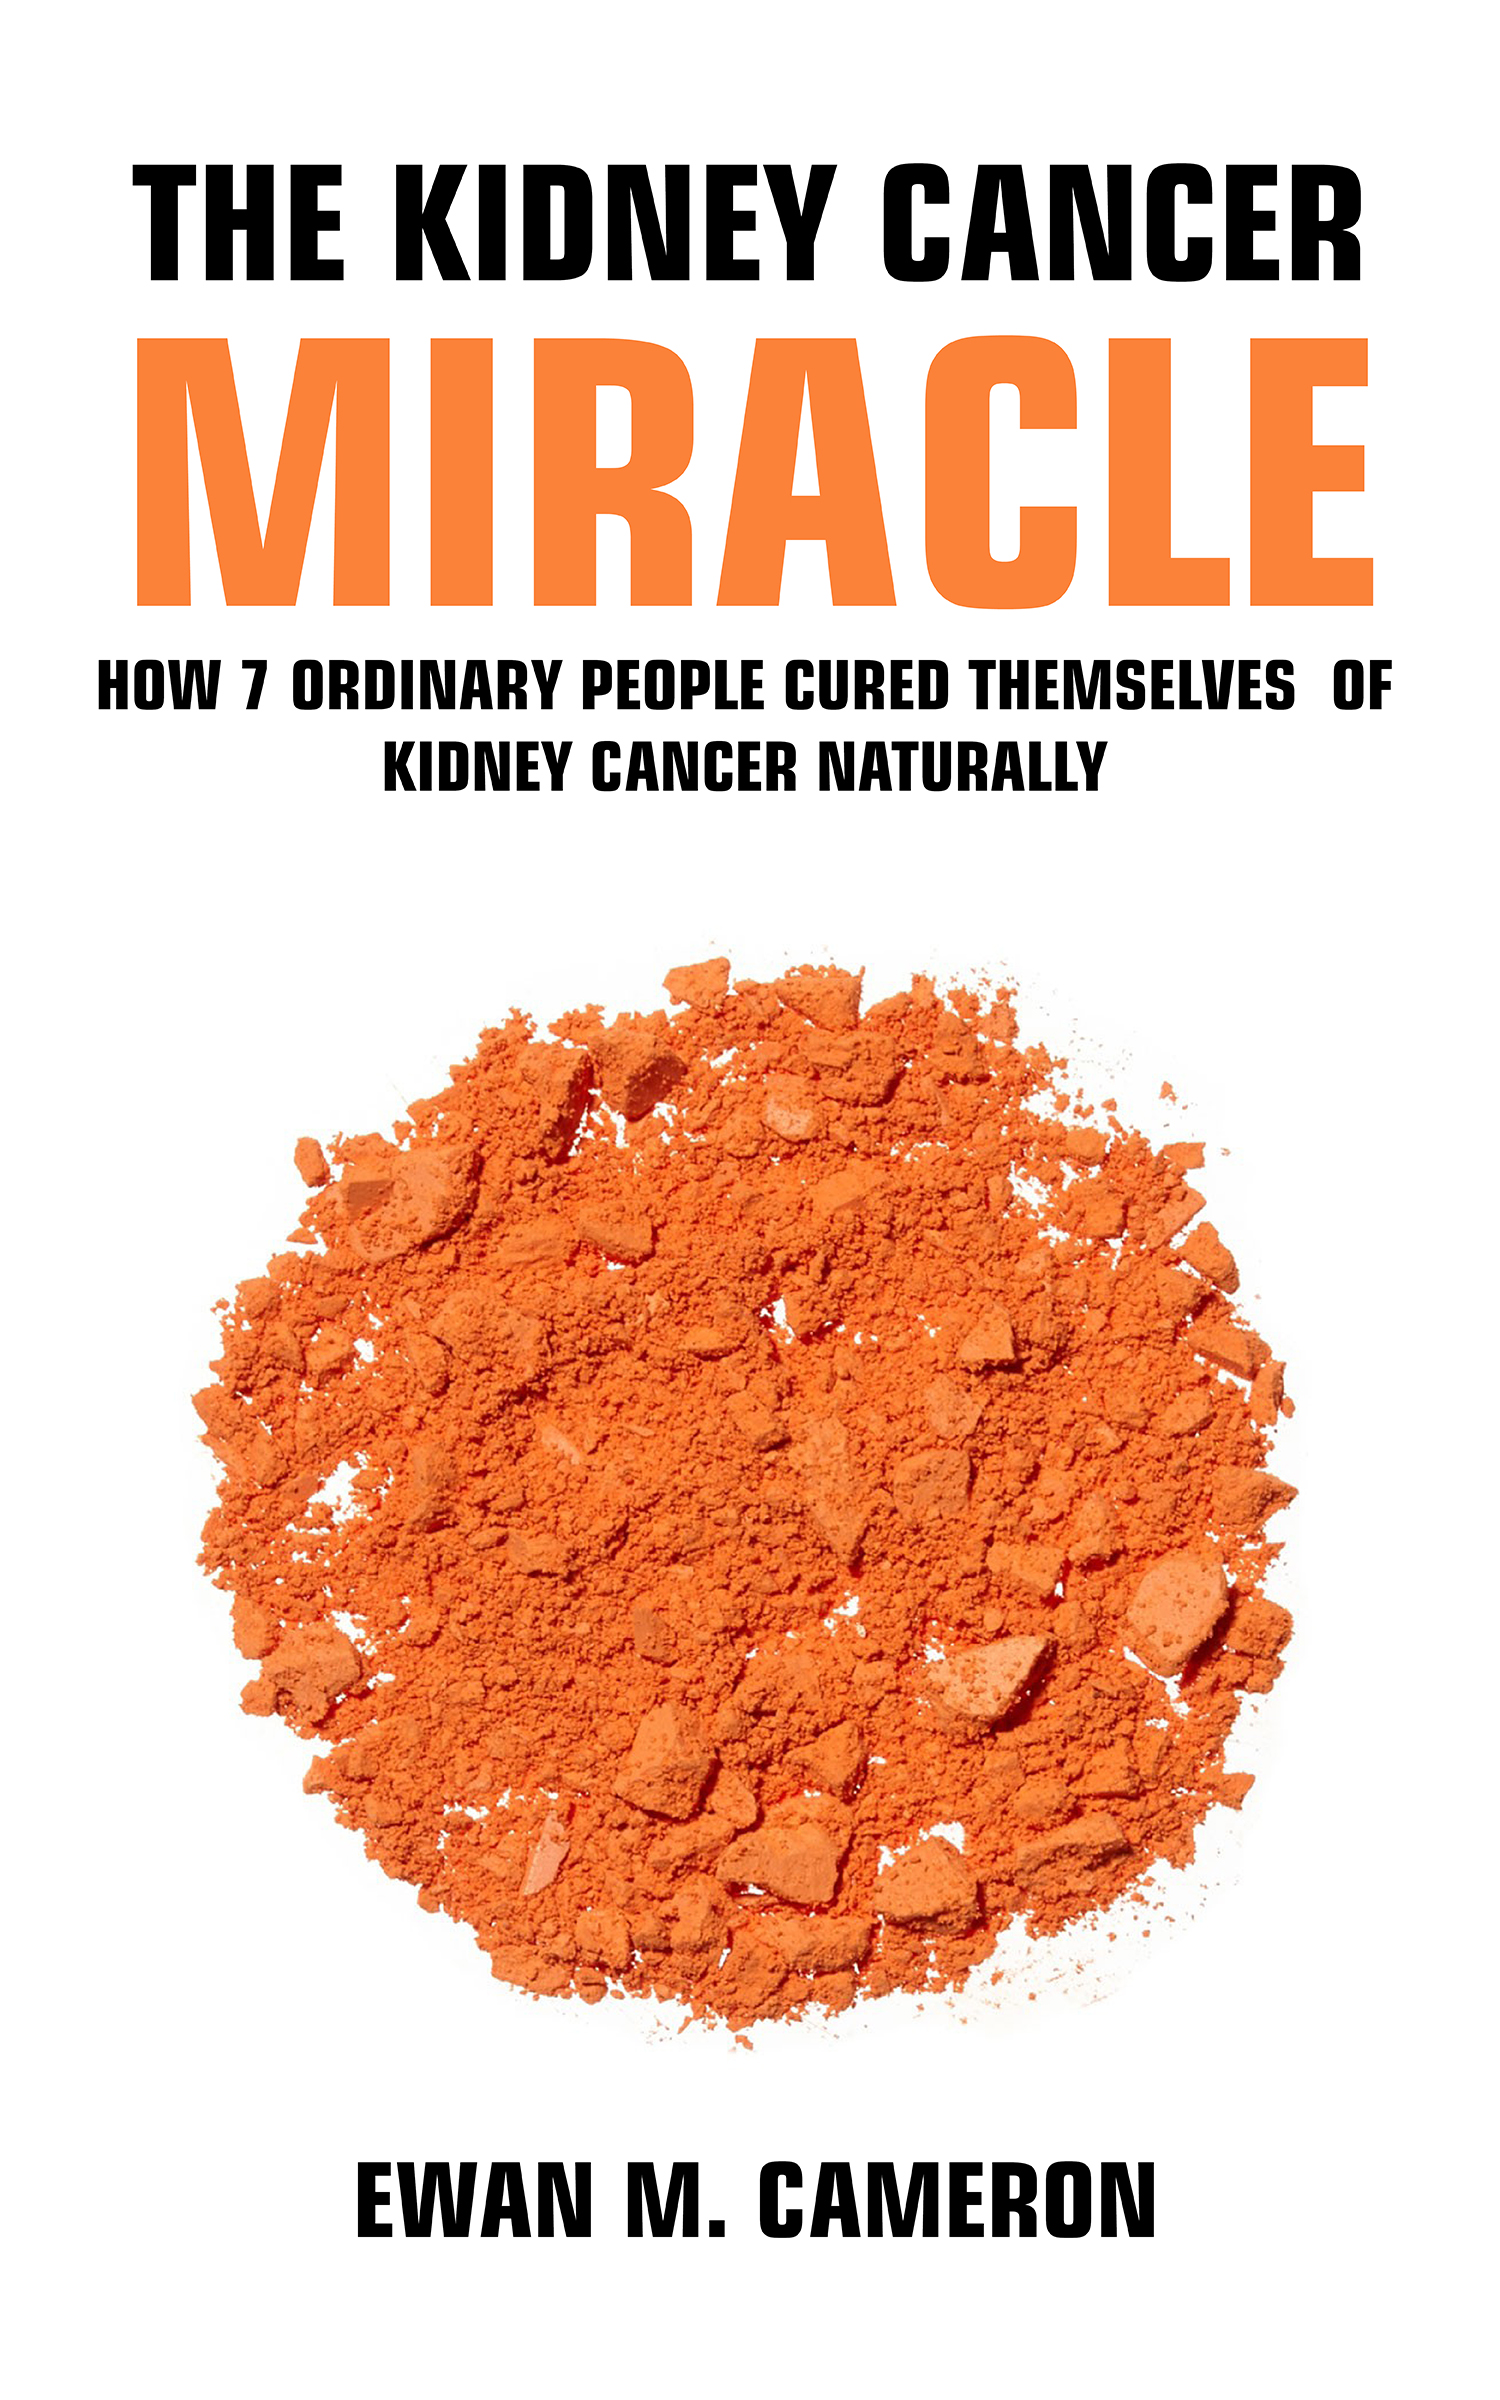 """The Kidney Cancer """"Miracle"""" How 7 Ordinary People Cured Themselves of  Kidney Cancer Naturally, an Ebook by Ewan M Cameron"""